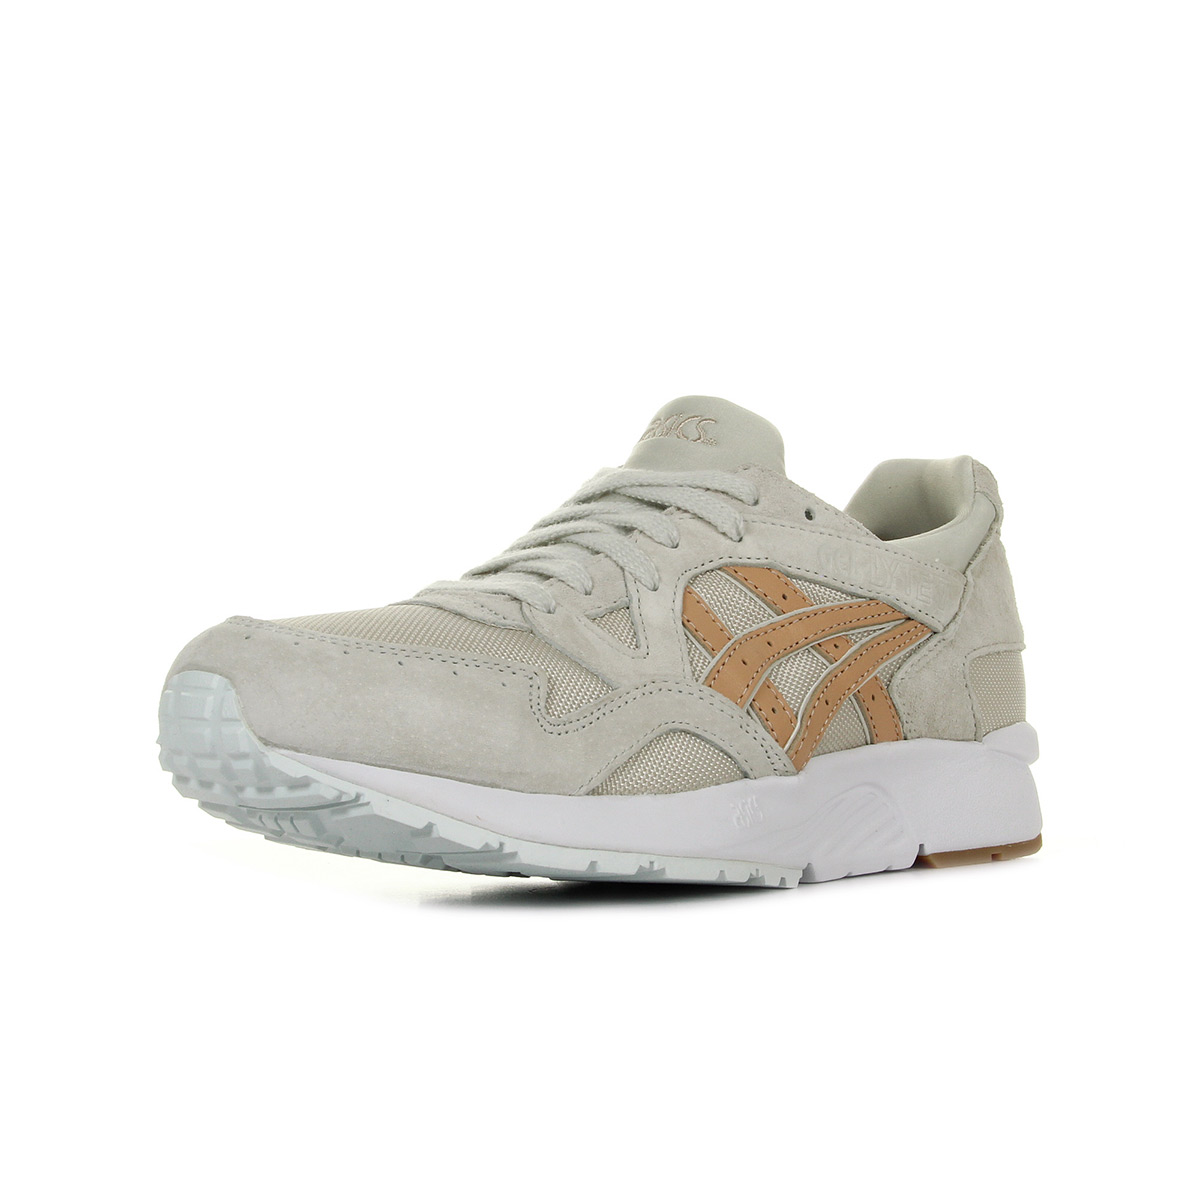 Chaussures Baskets Asics unisexe Gel Lyte V taille Beige Cuir Lacets